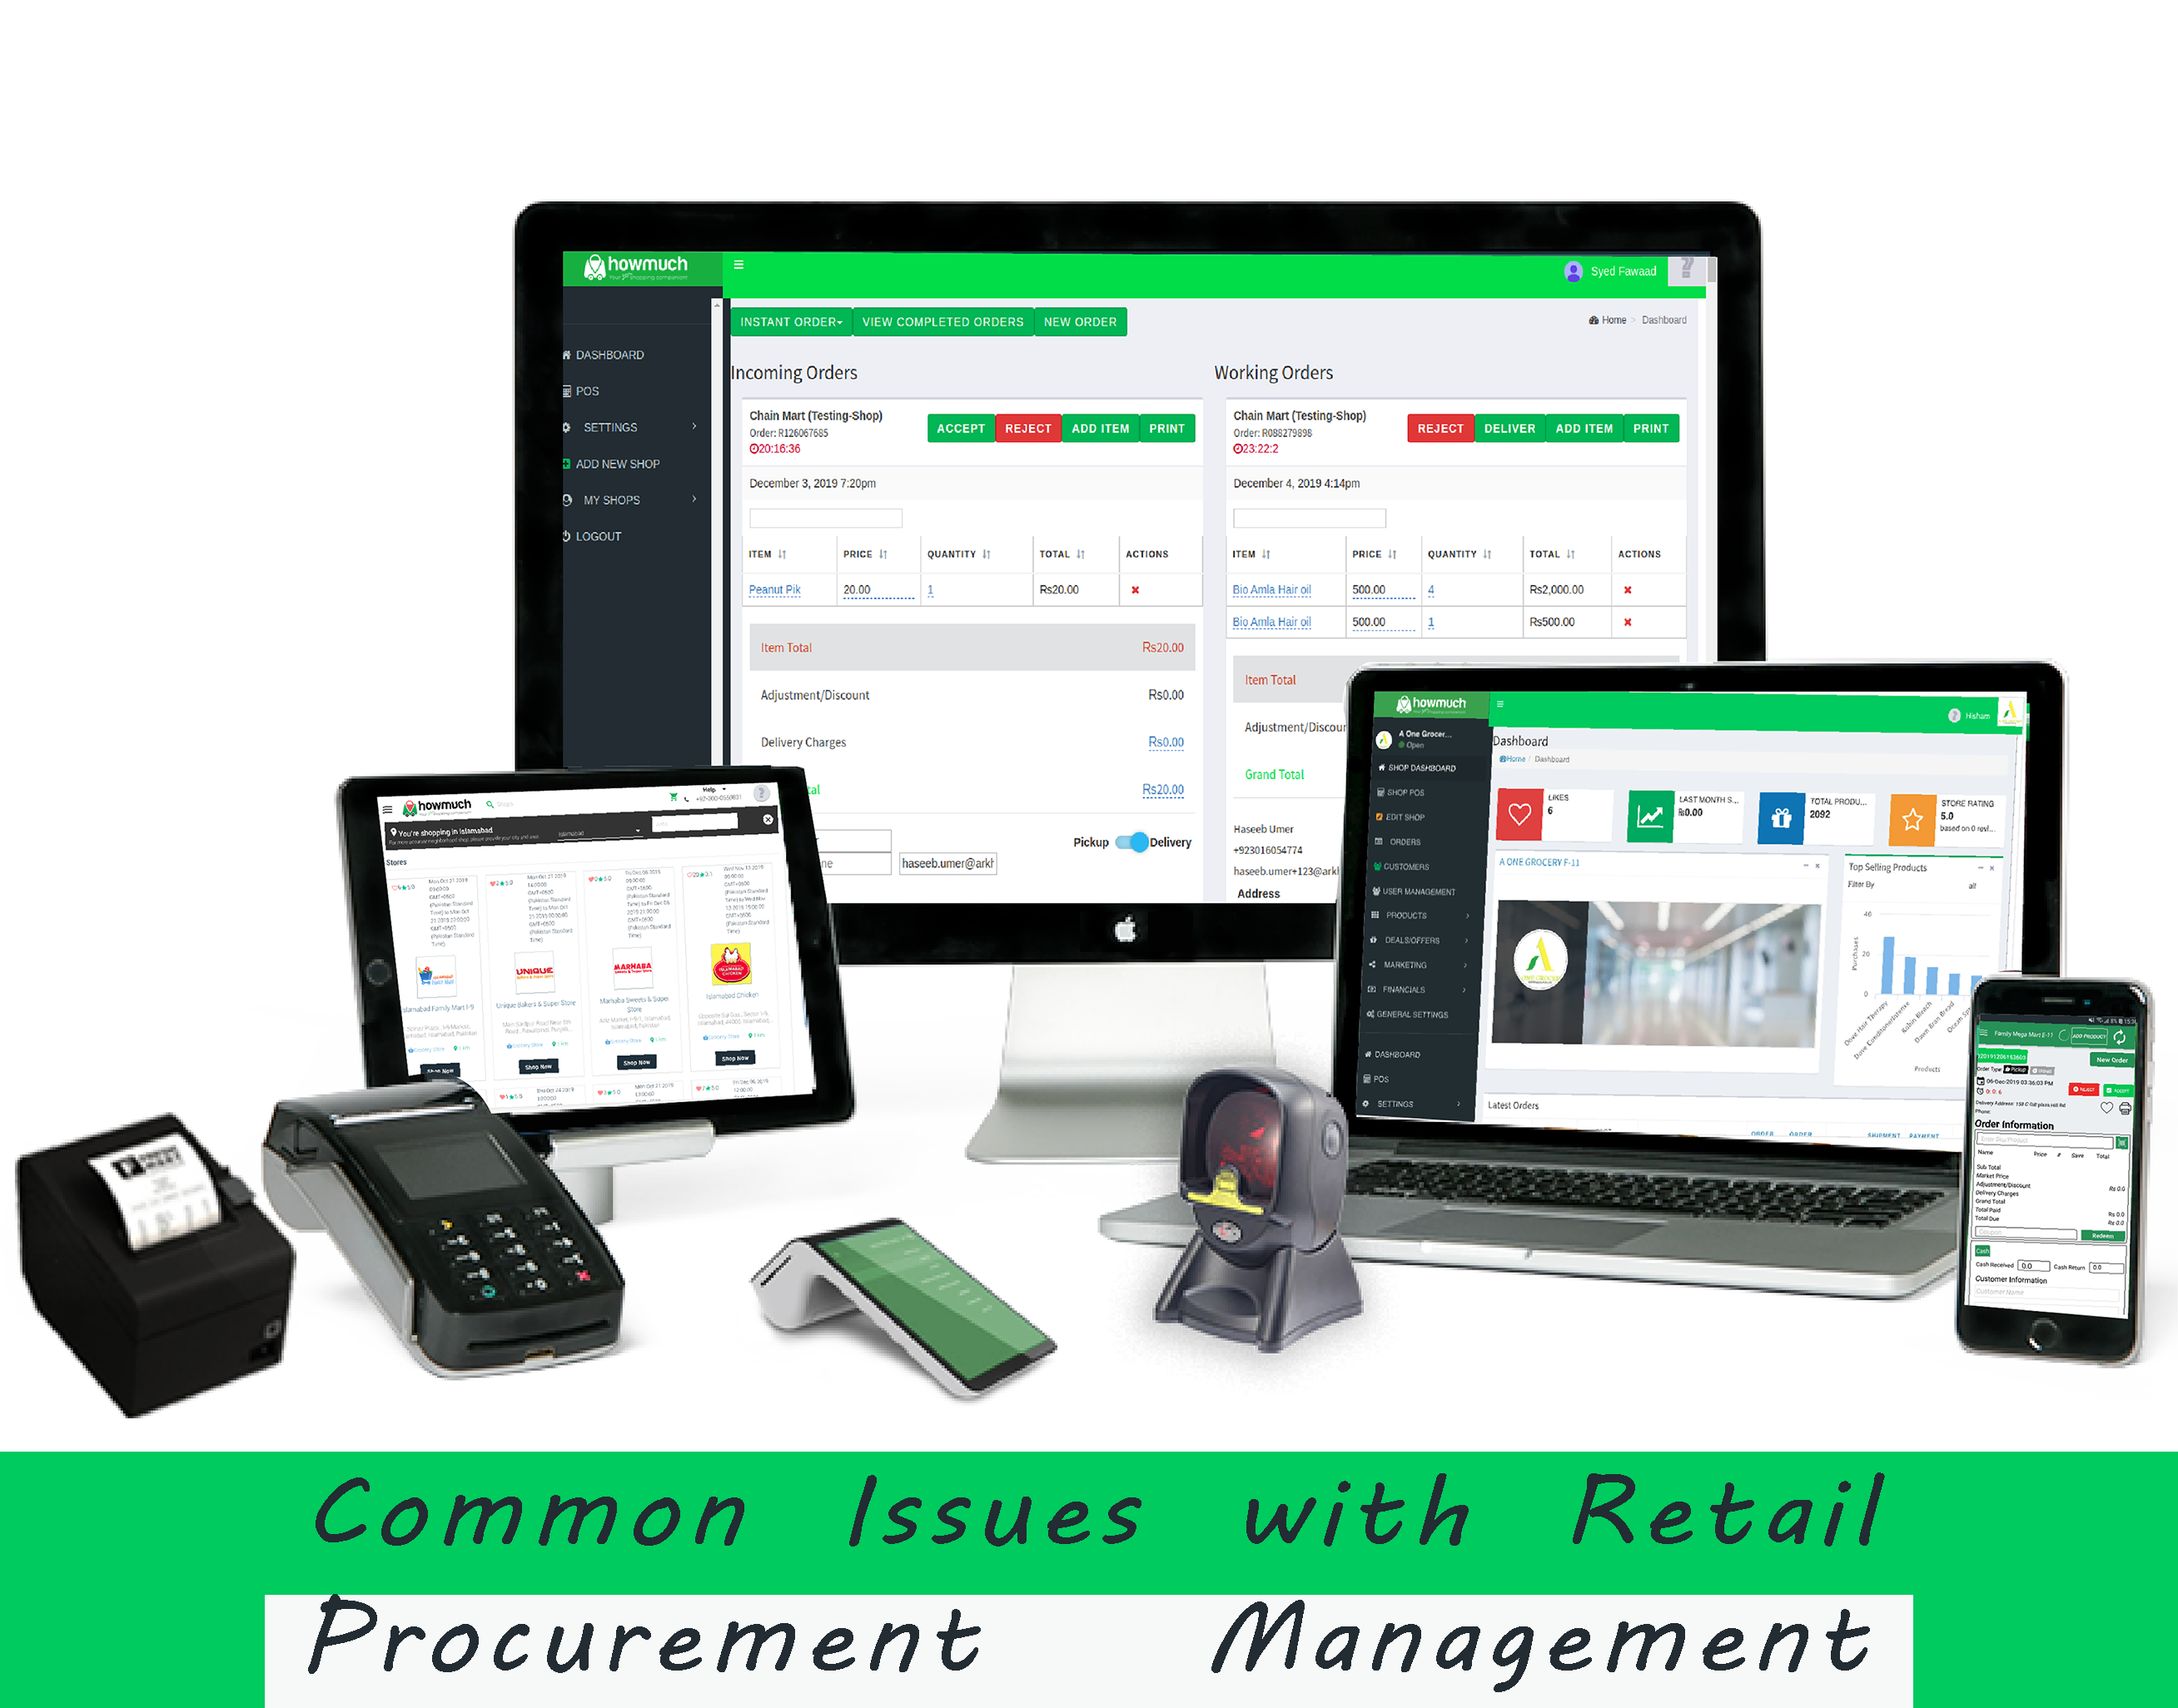 Common Issues with Retail Procurement Management